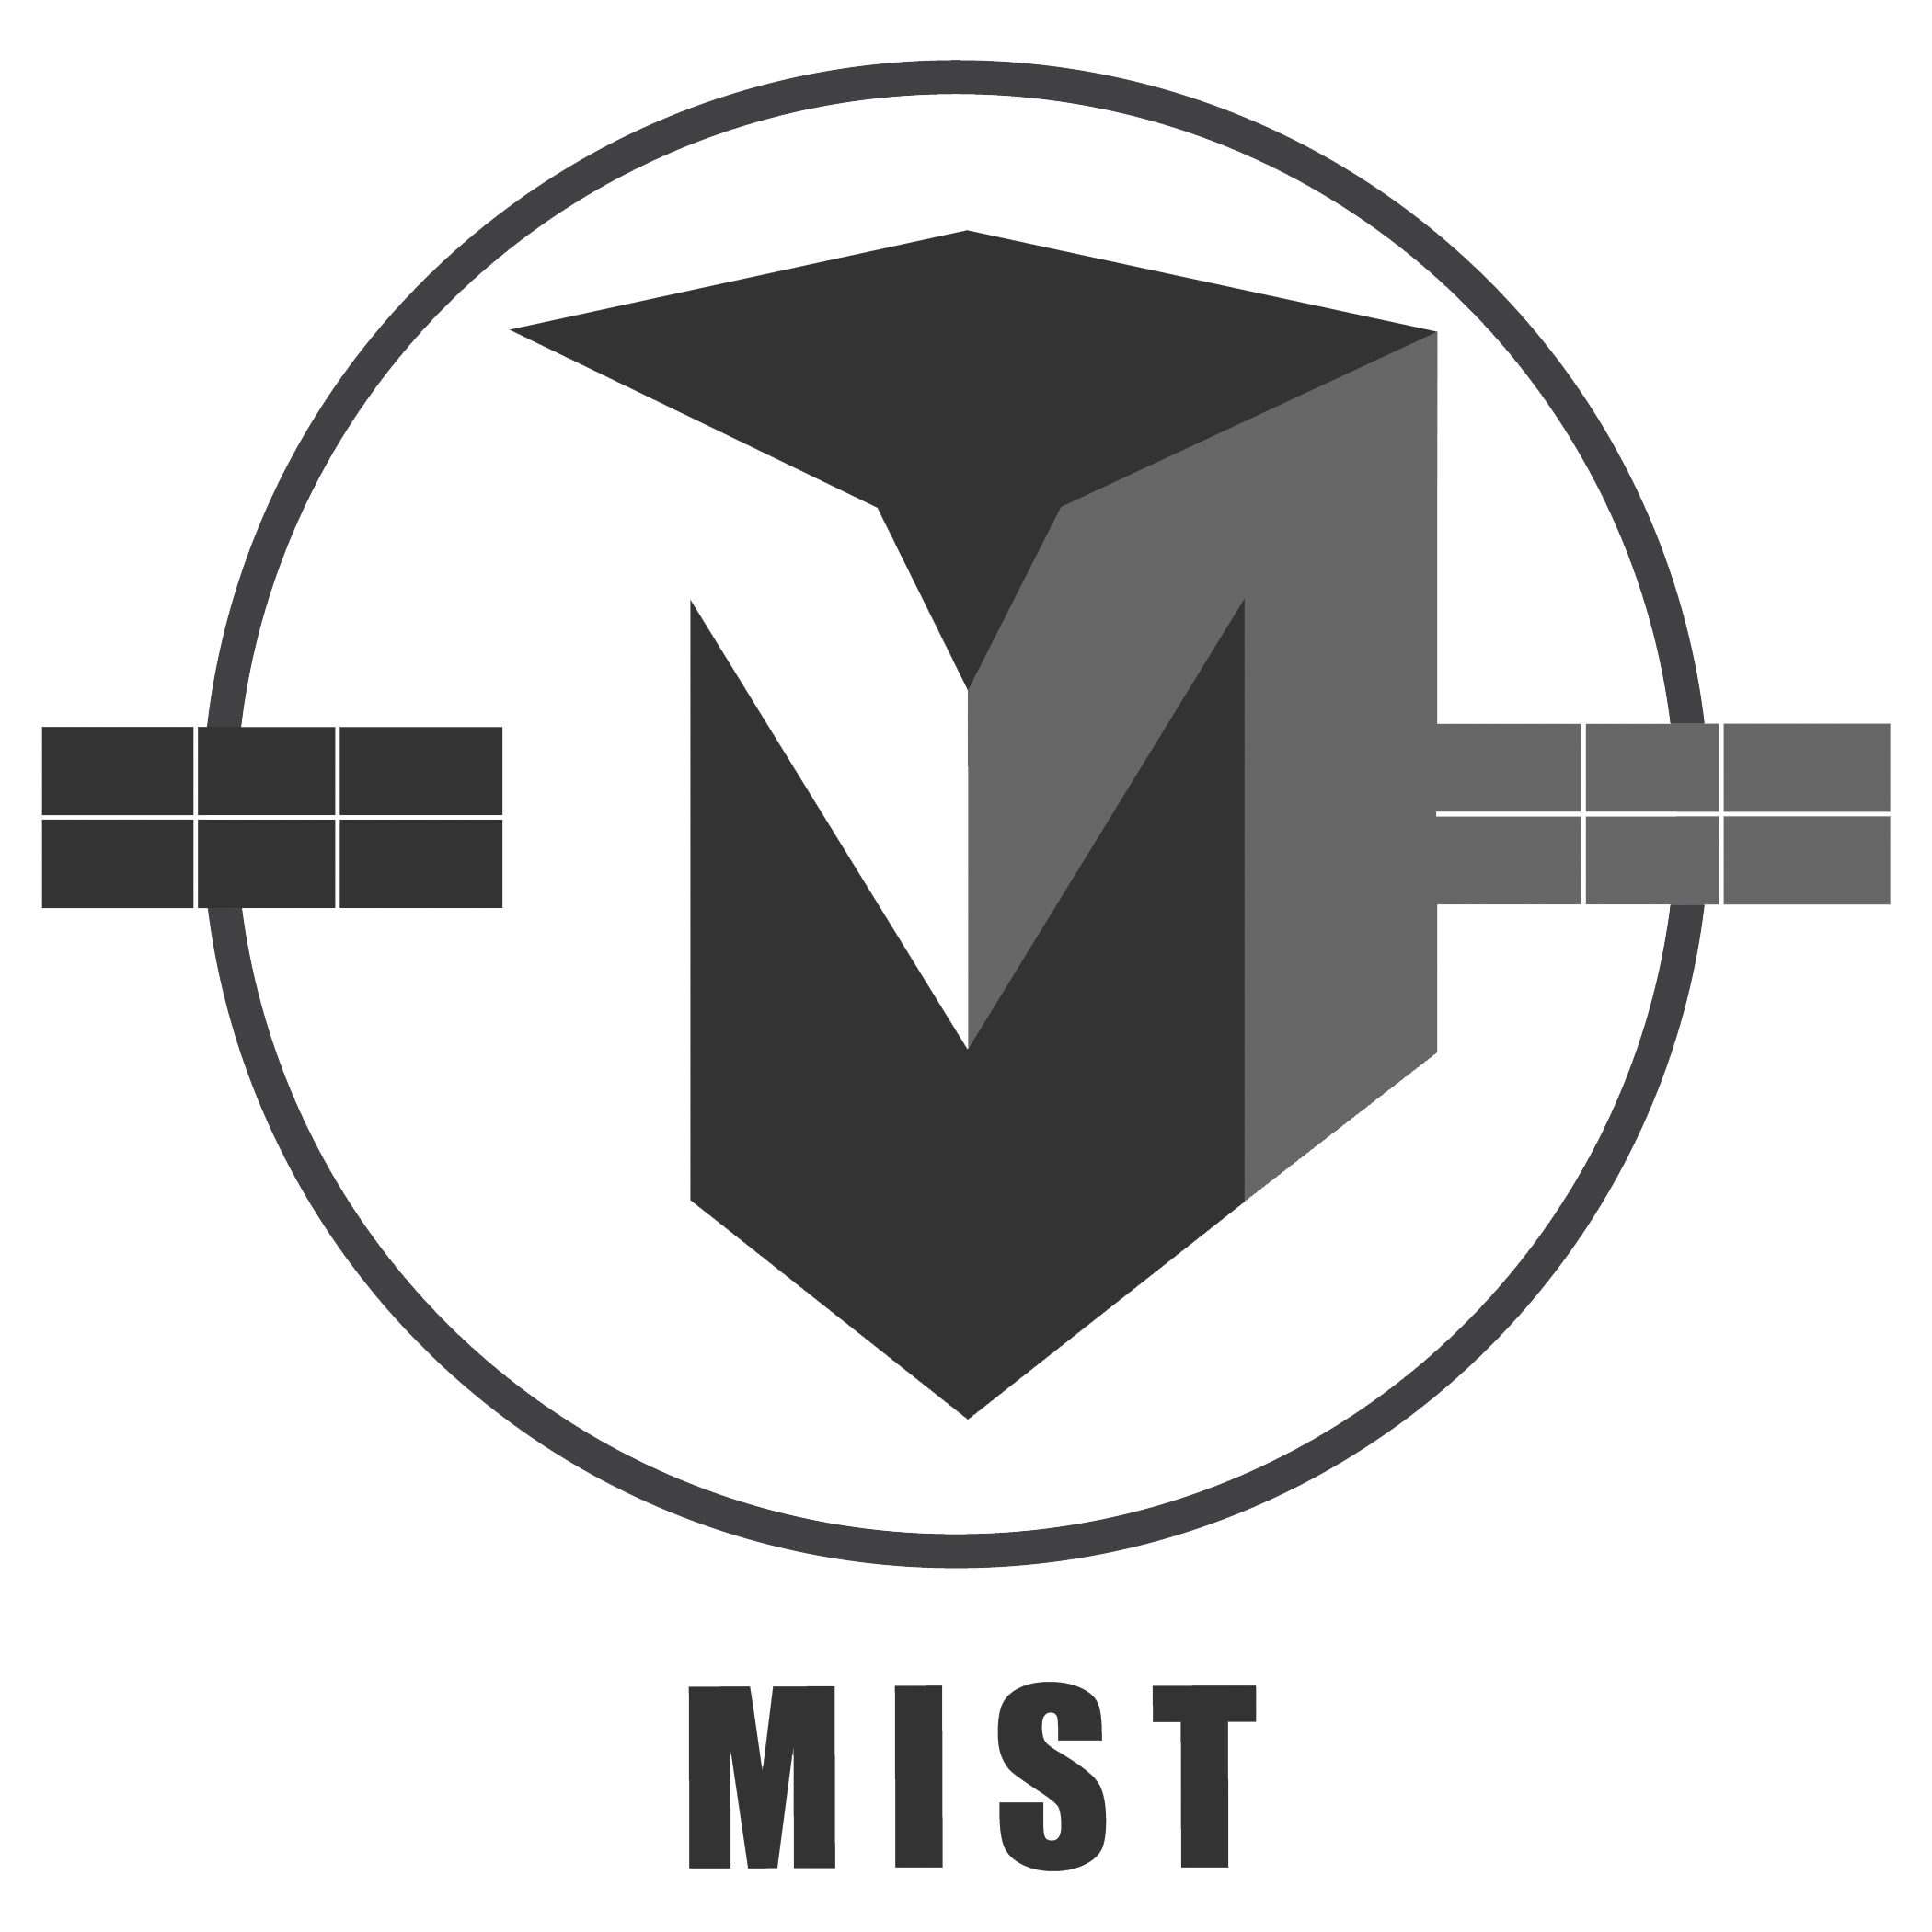 MIST – the MIniature Student saTellite